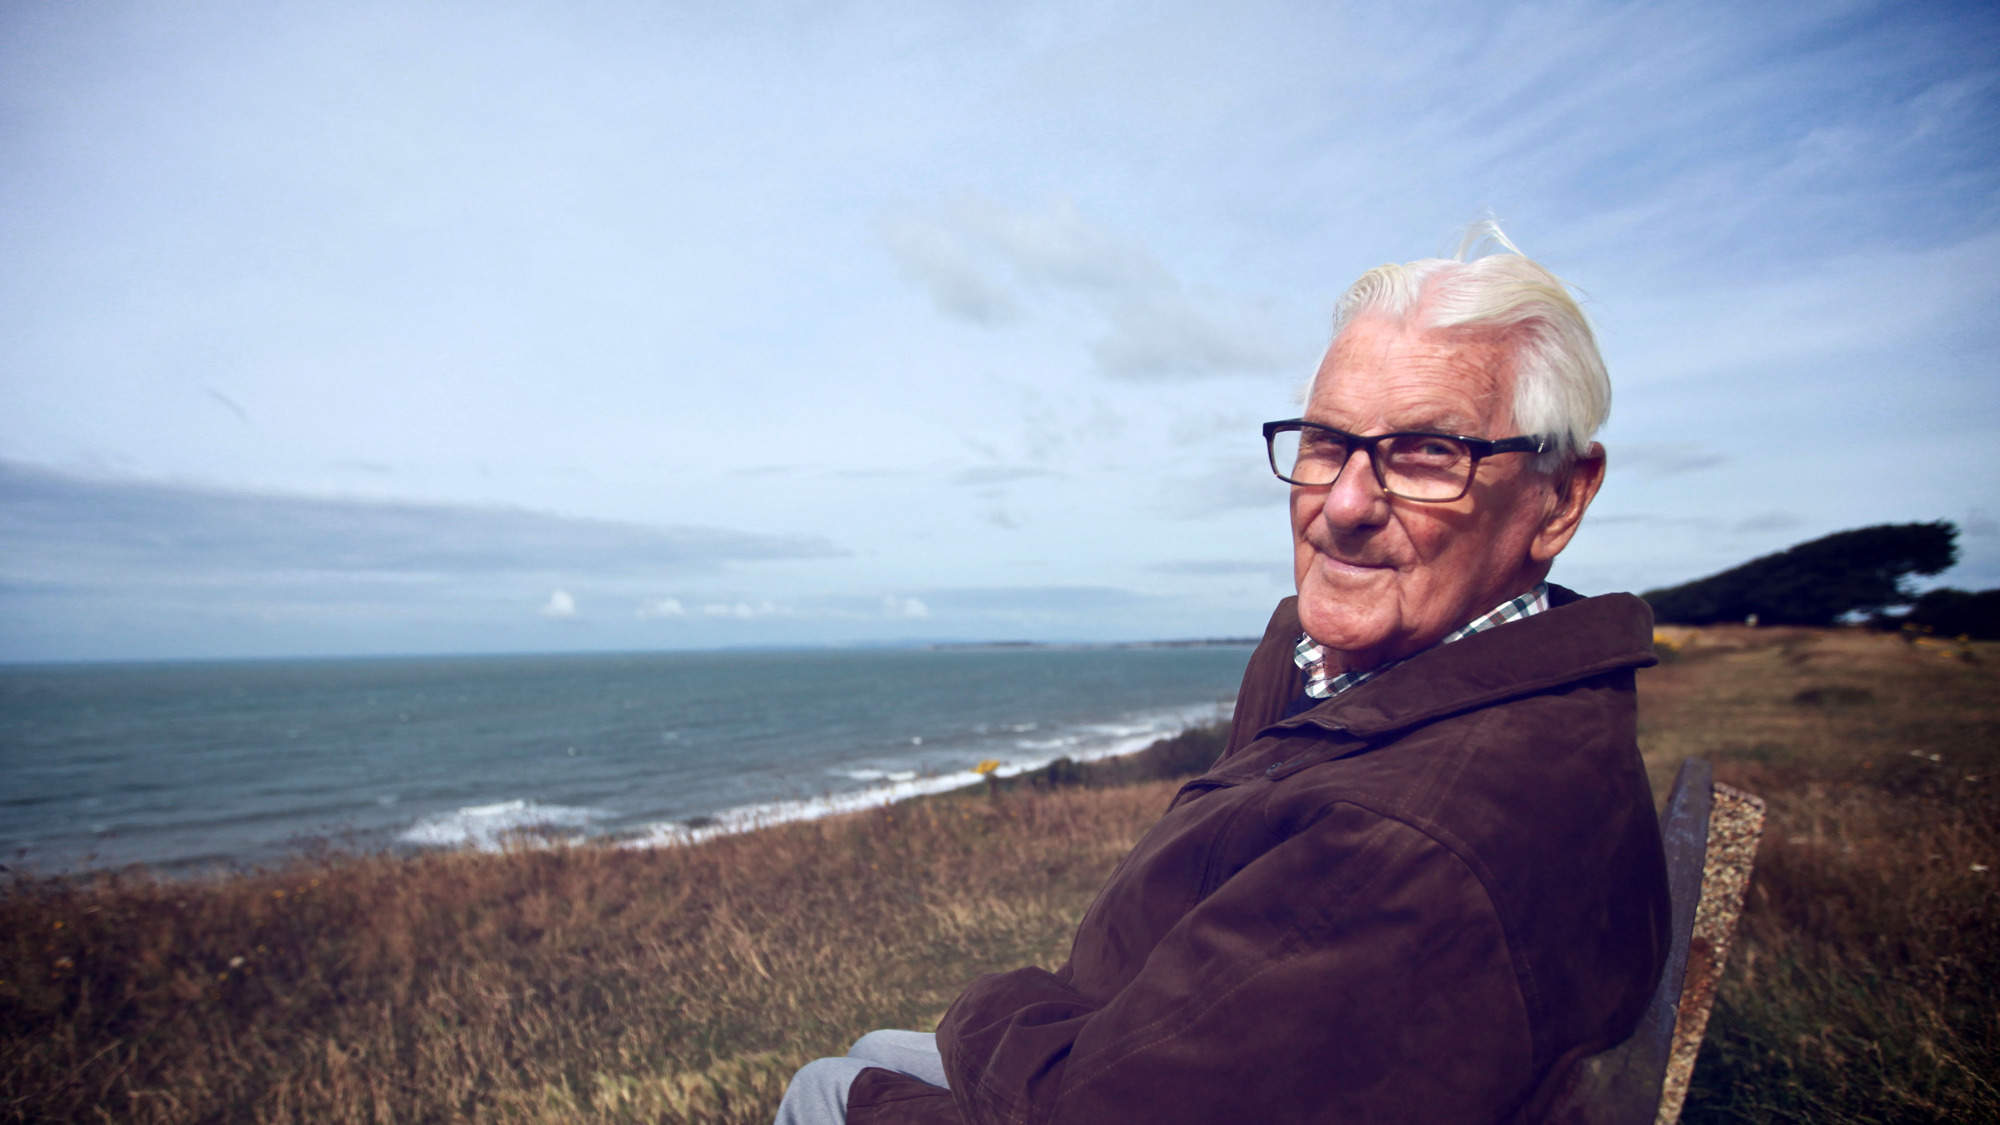 Finding comfort in the BBC's The Age of Loneliness film